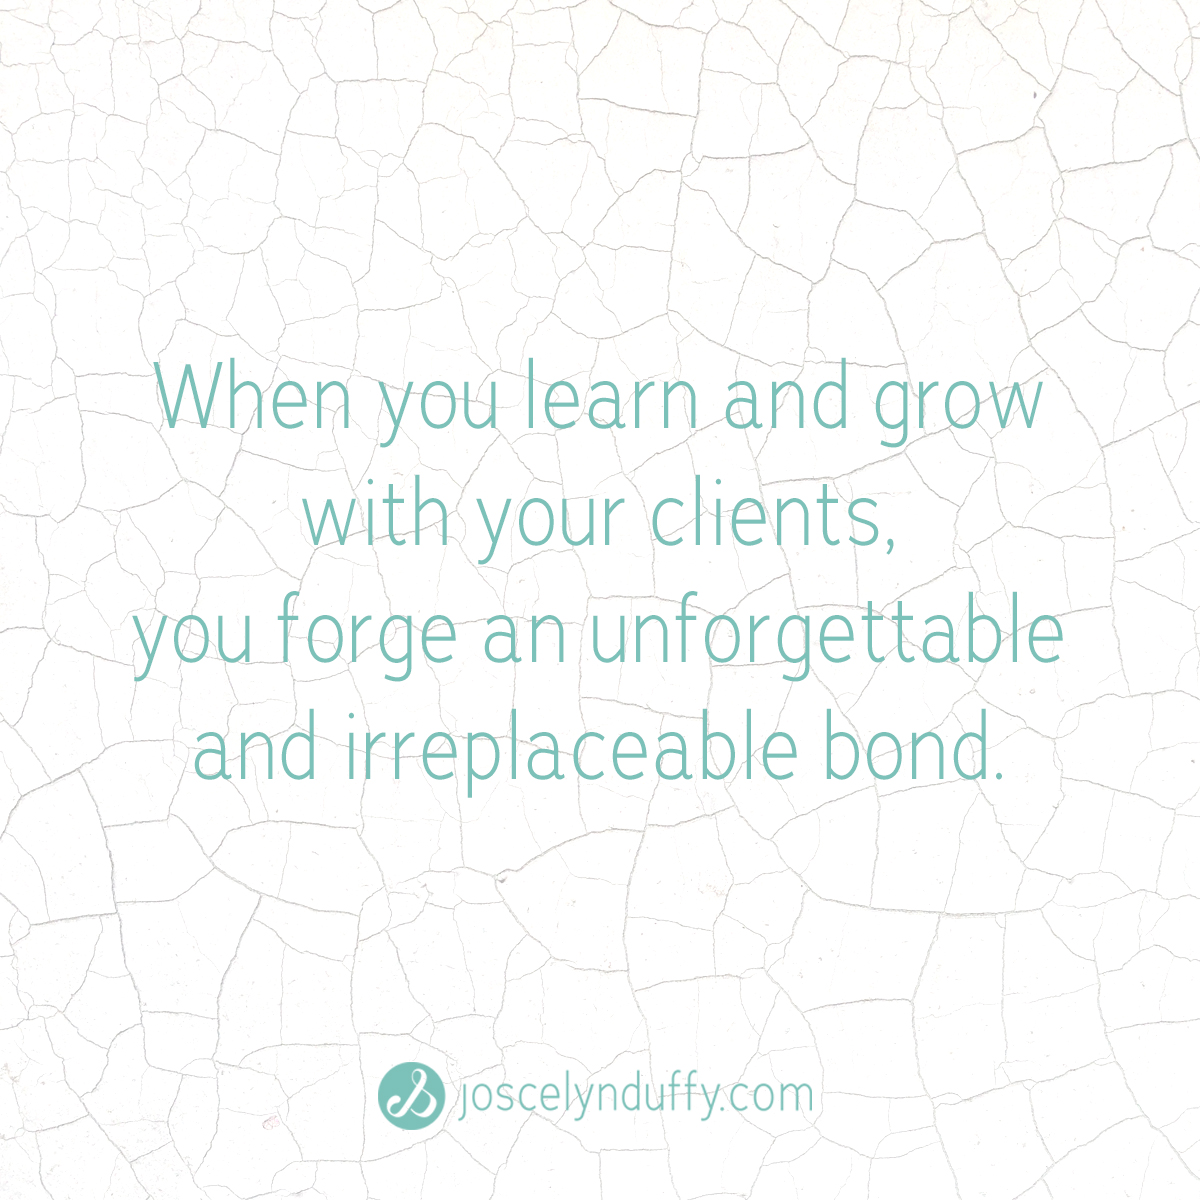 Joscelyn Duffy_quote_When you learn and grow with your audience you forge and irreplaceable bond_March